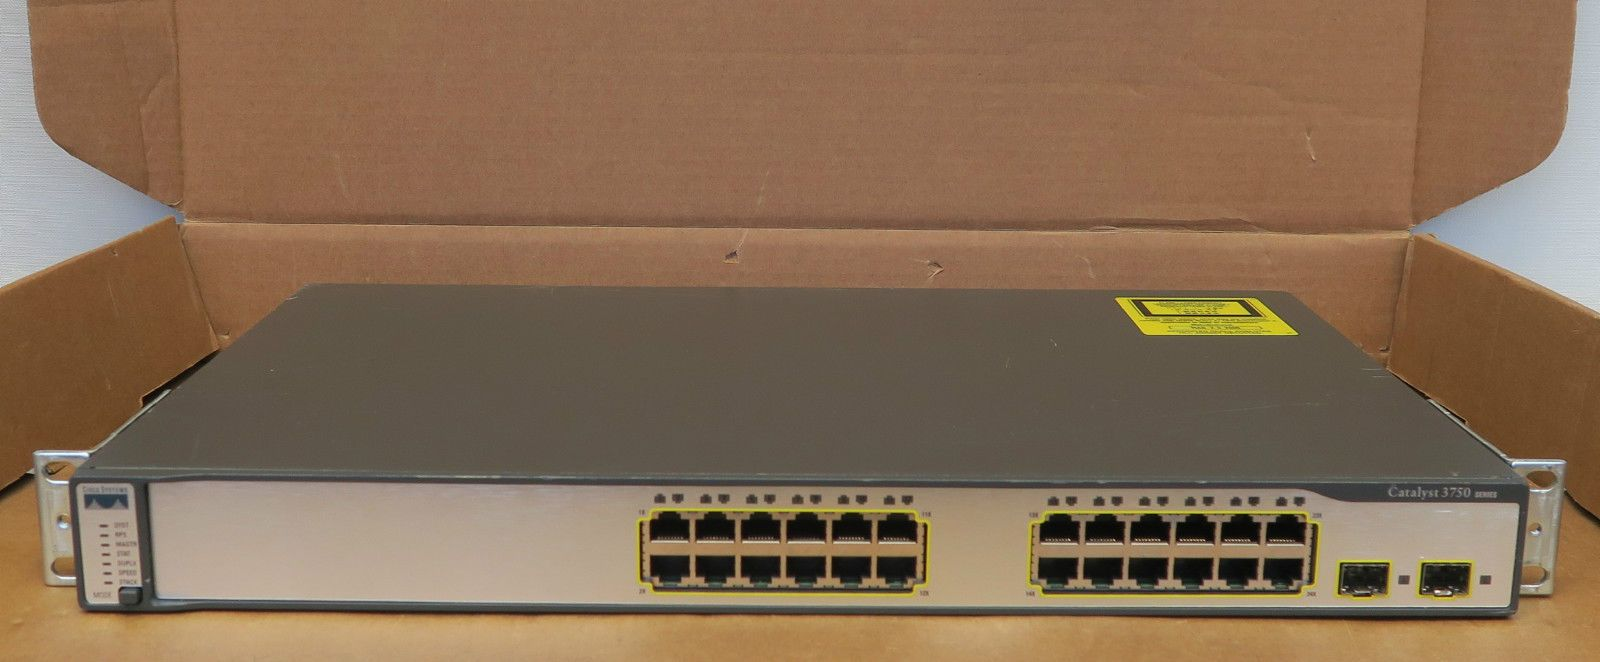 Cisco WS-C3750-24TS-S Catalyst 24 Port Gigabit Ethernet Network Switch W/  Ears